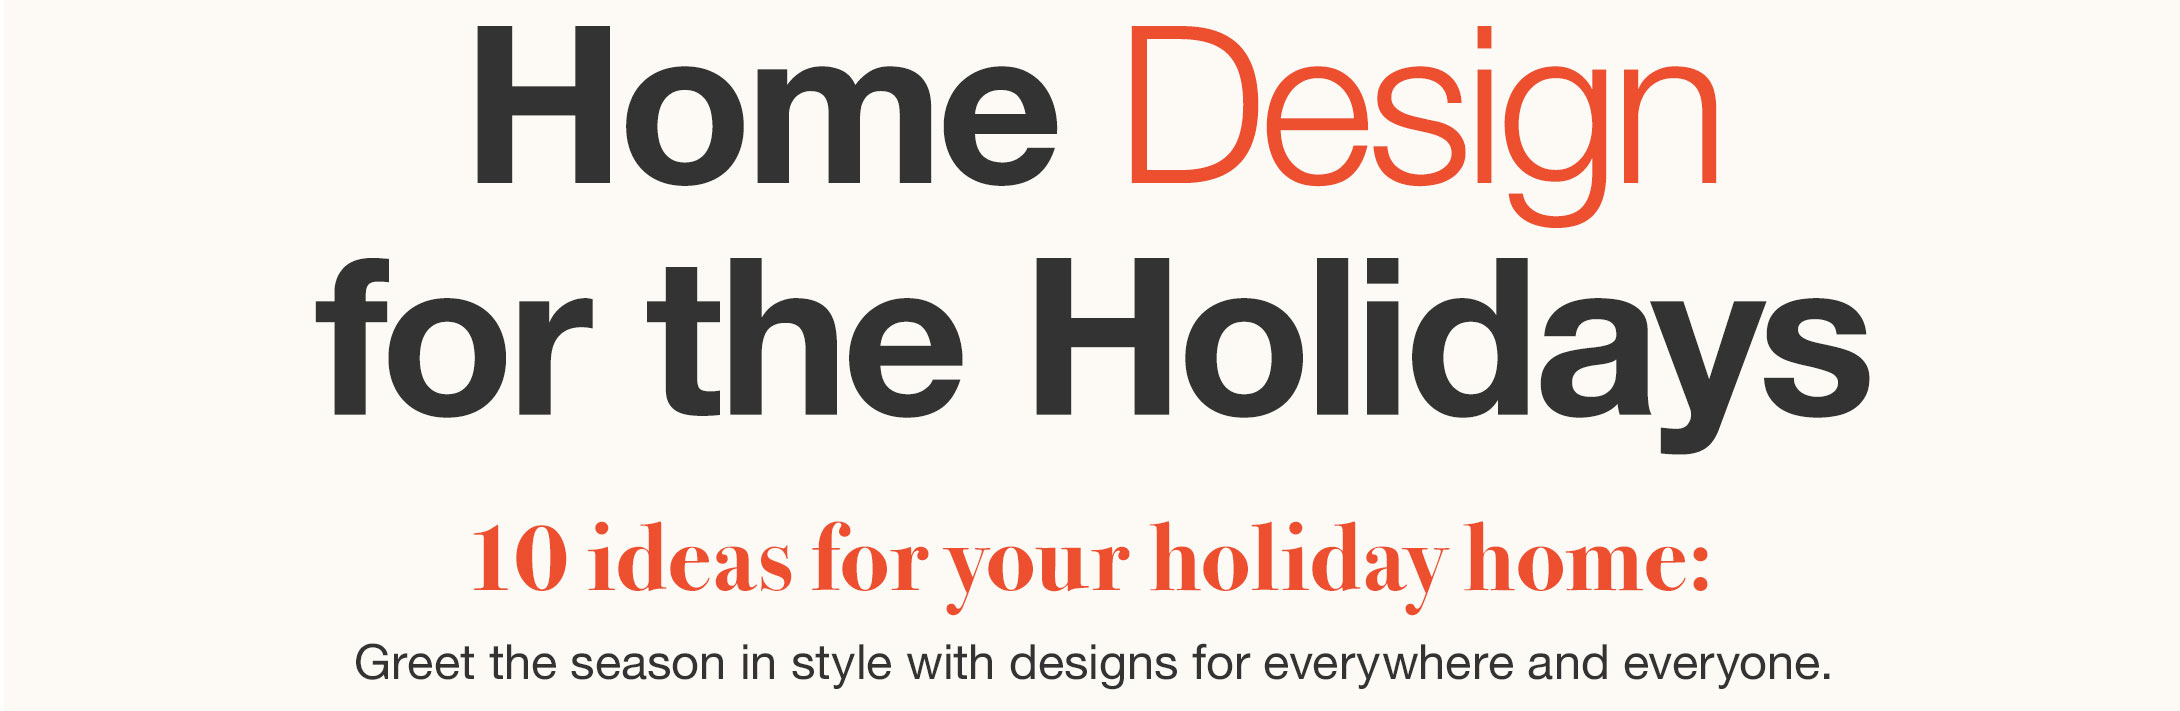 Home (Design) for the Holidays